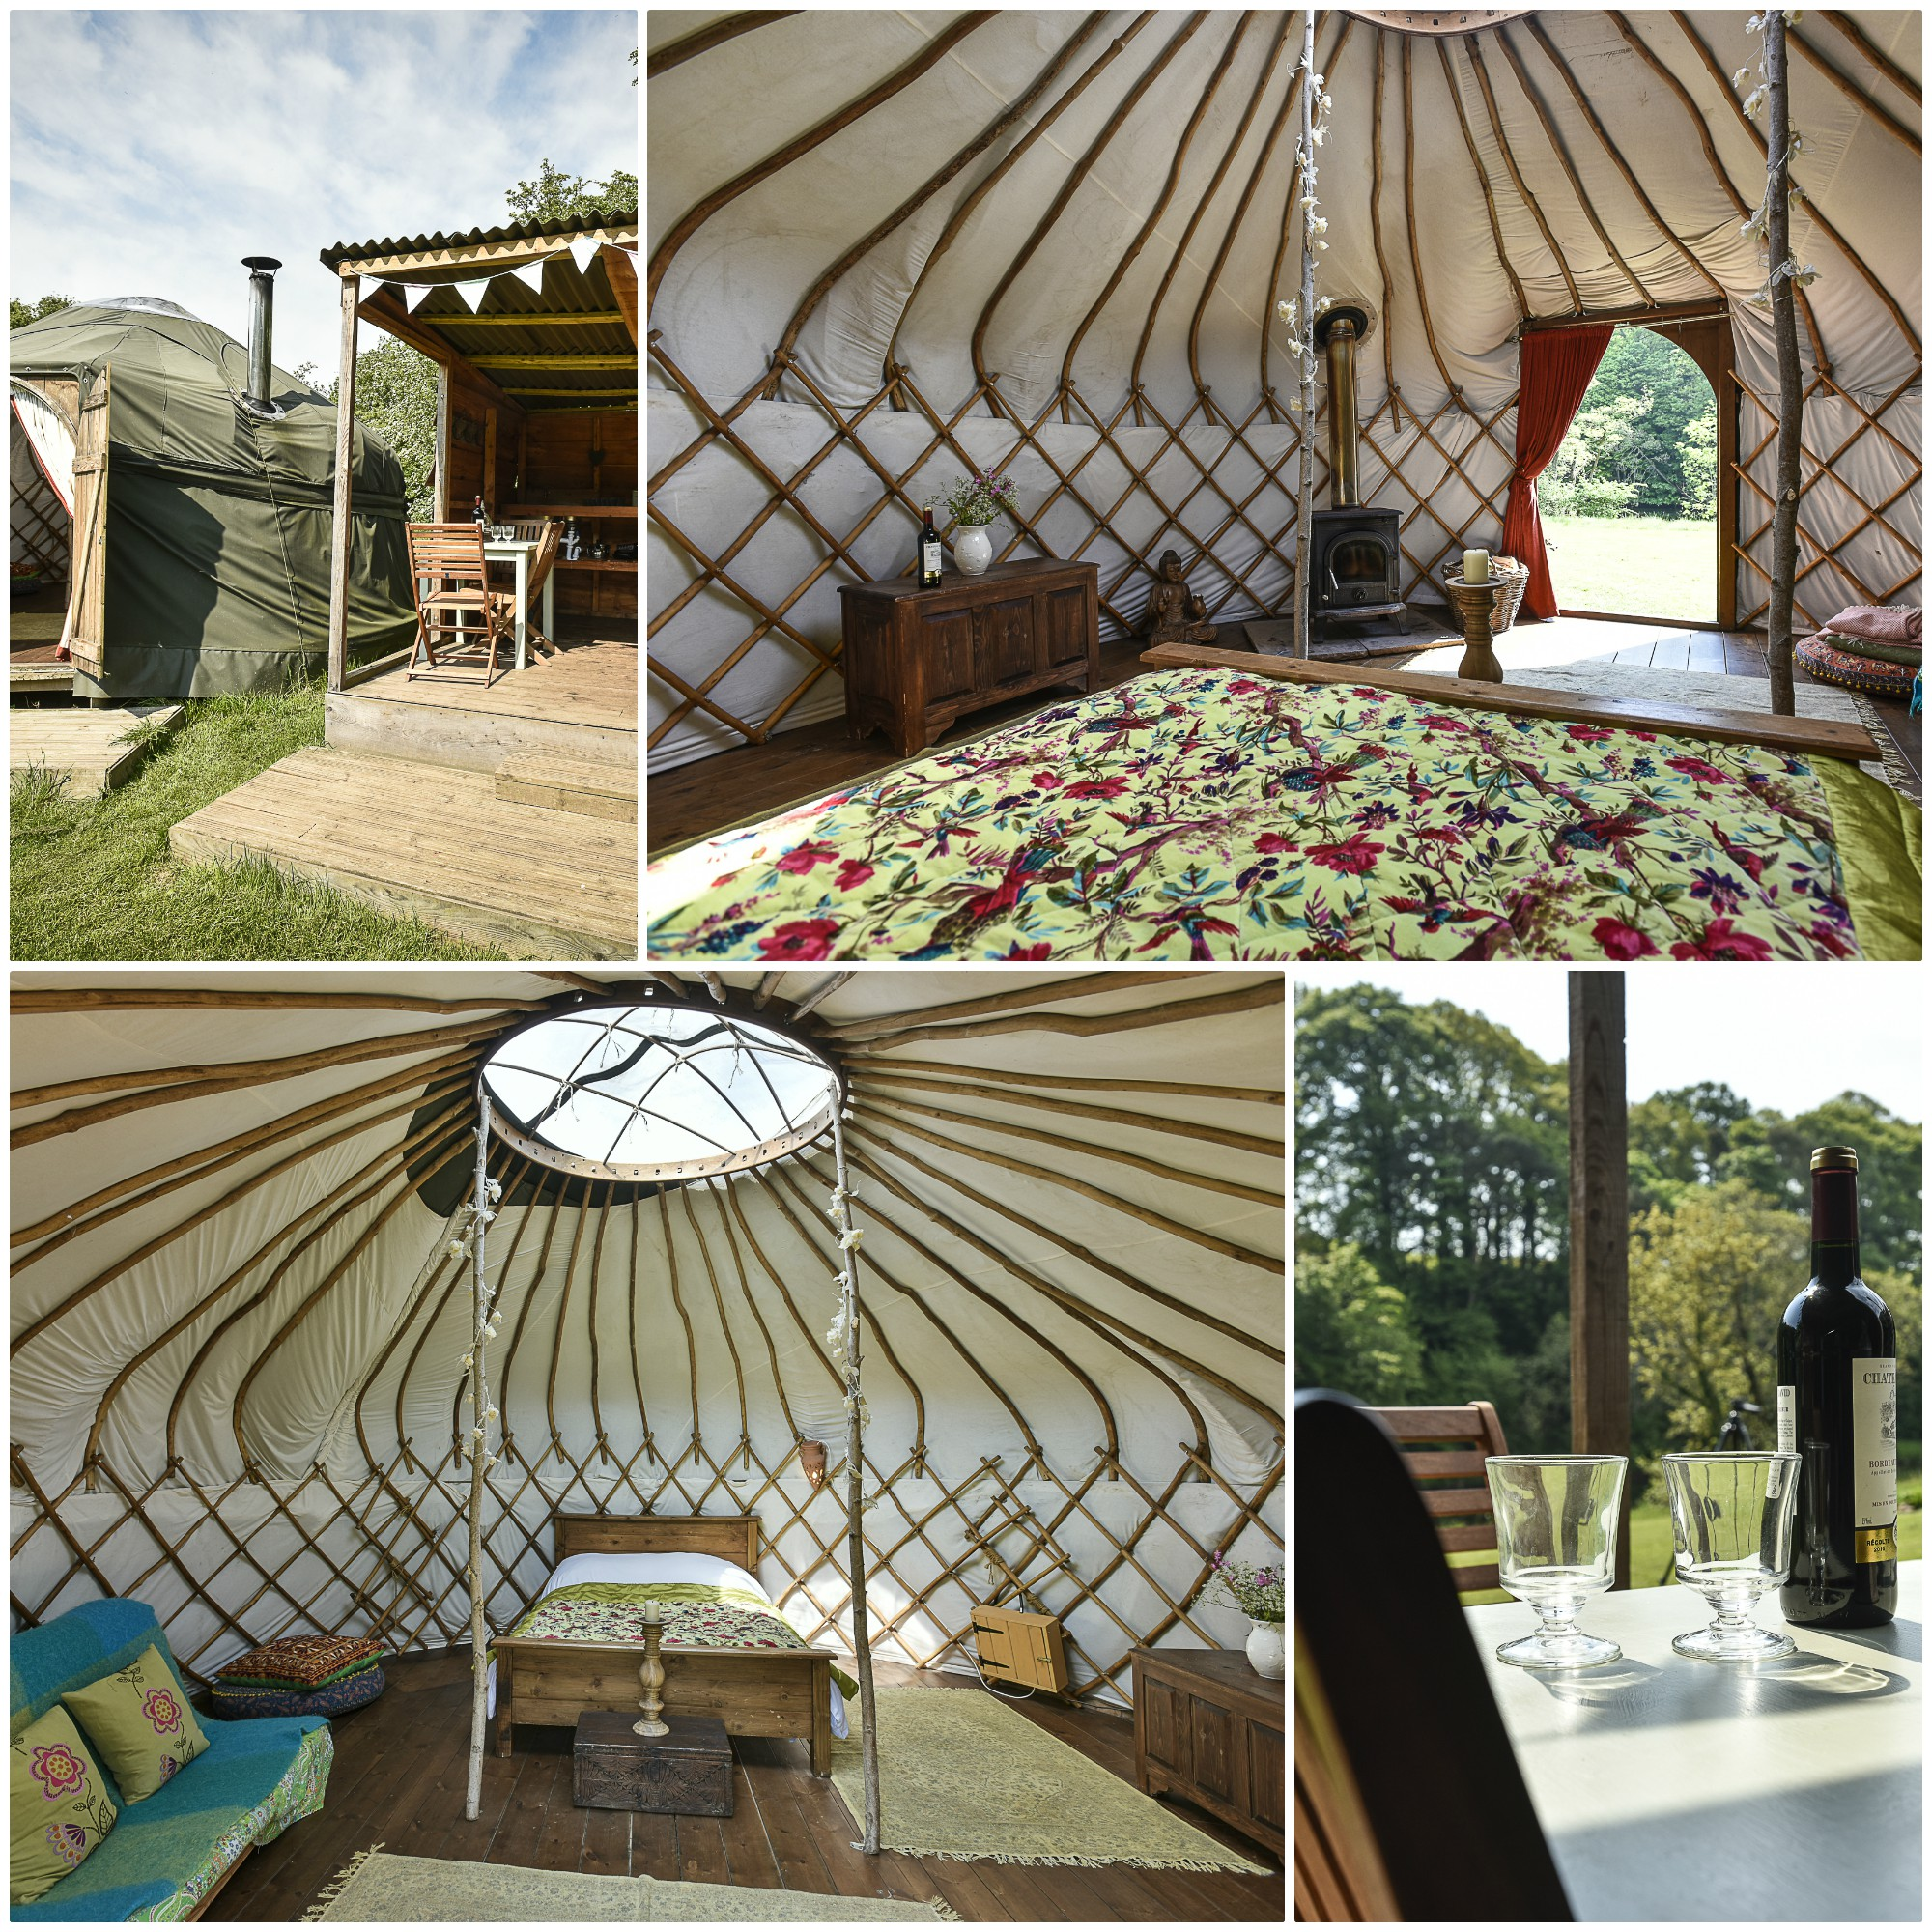 Beautiful Yurt with Hot Tub in the Eden Valley